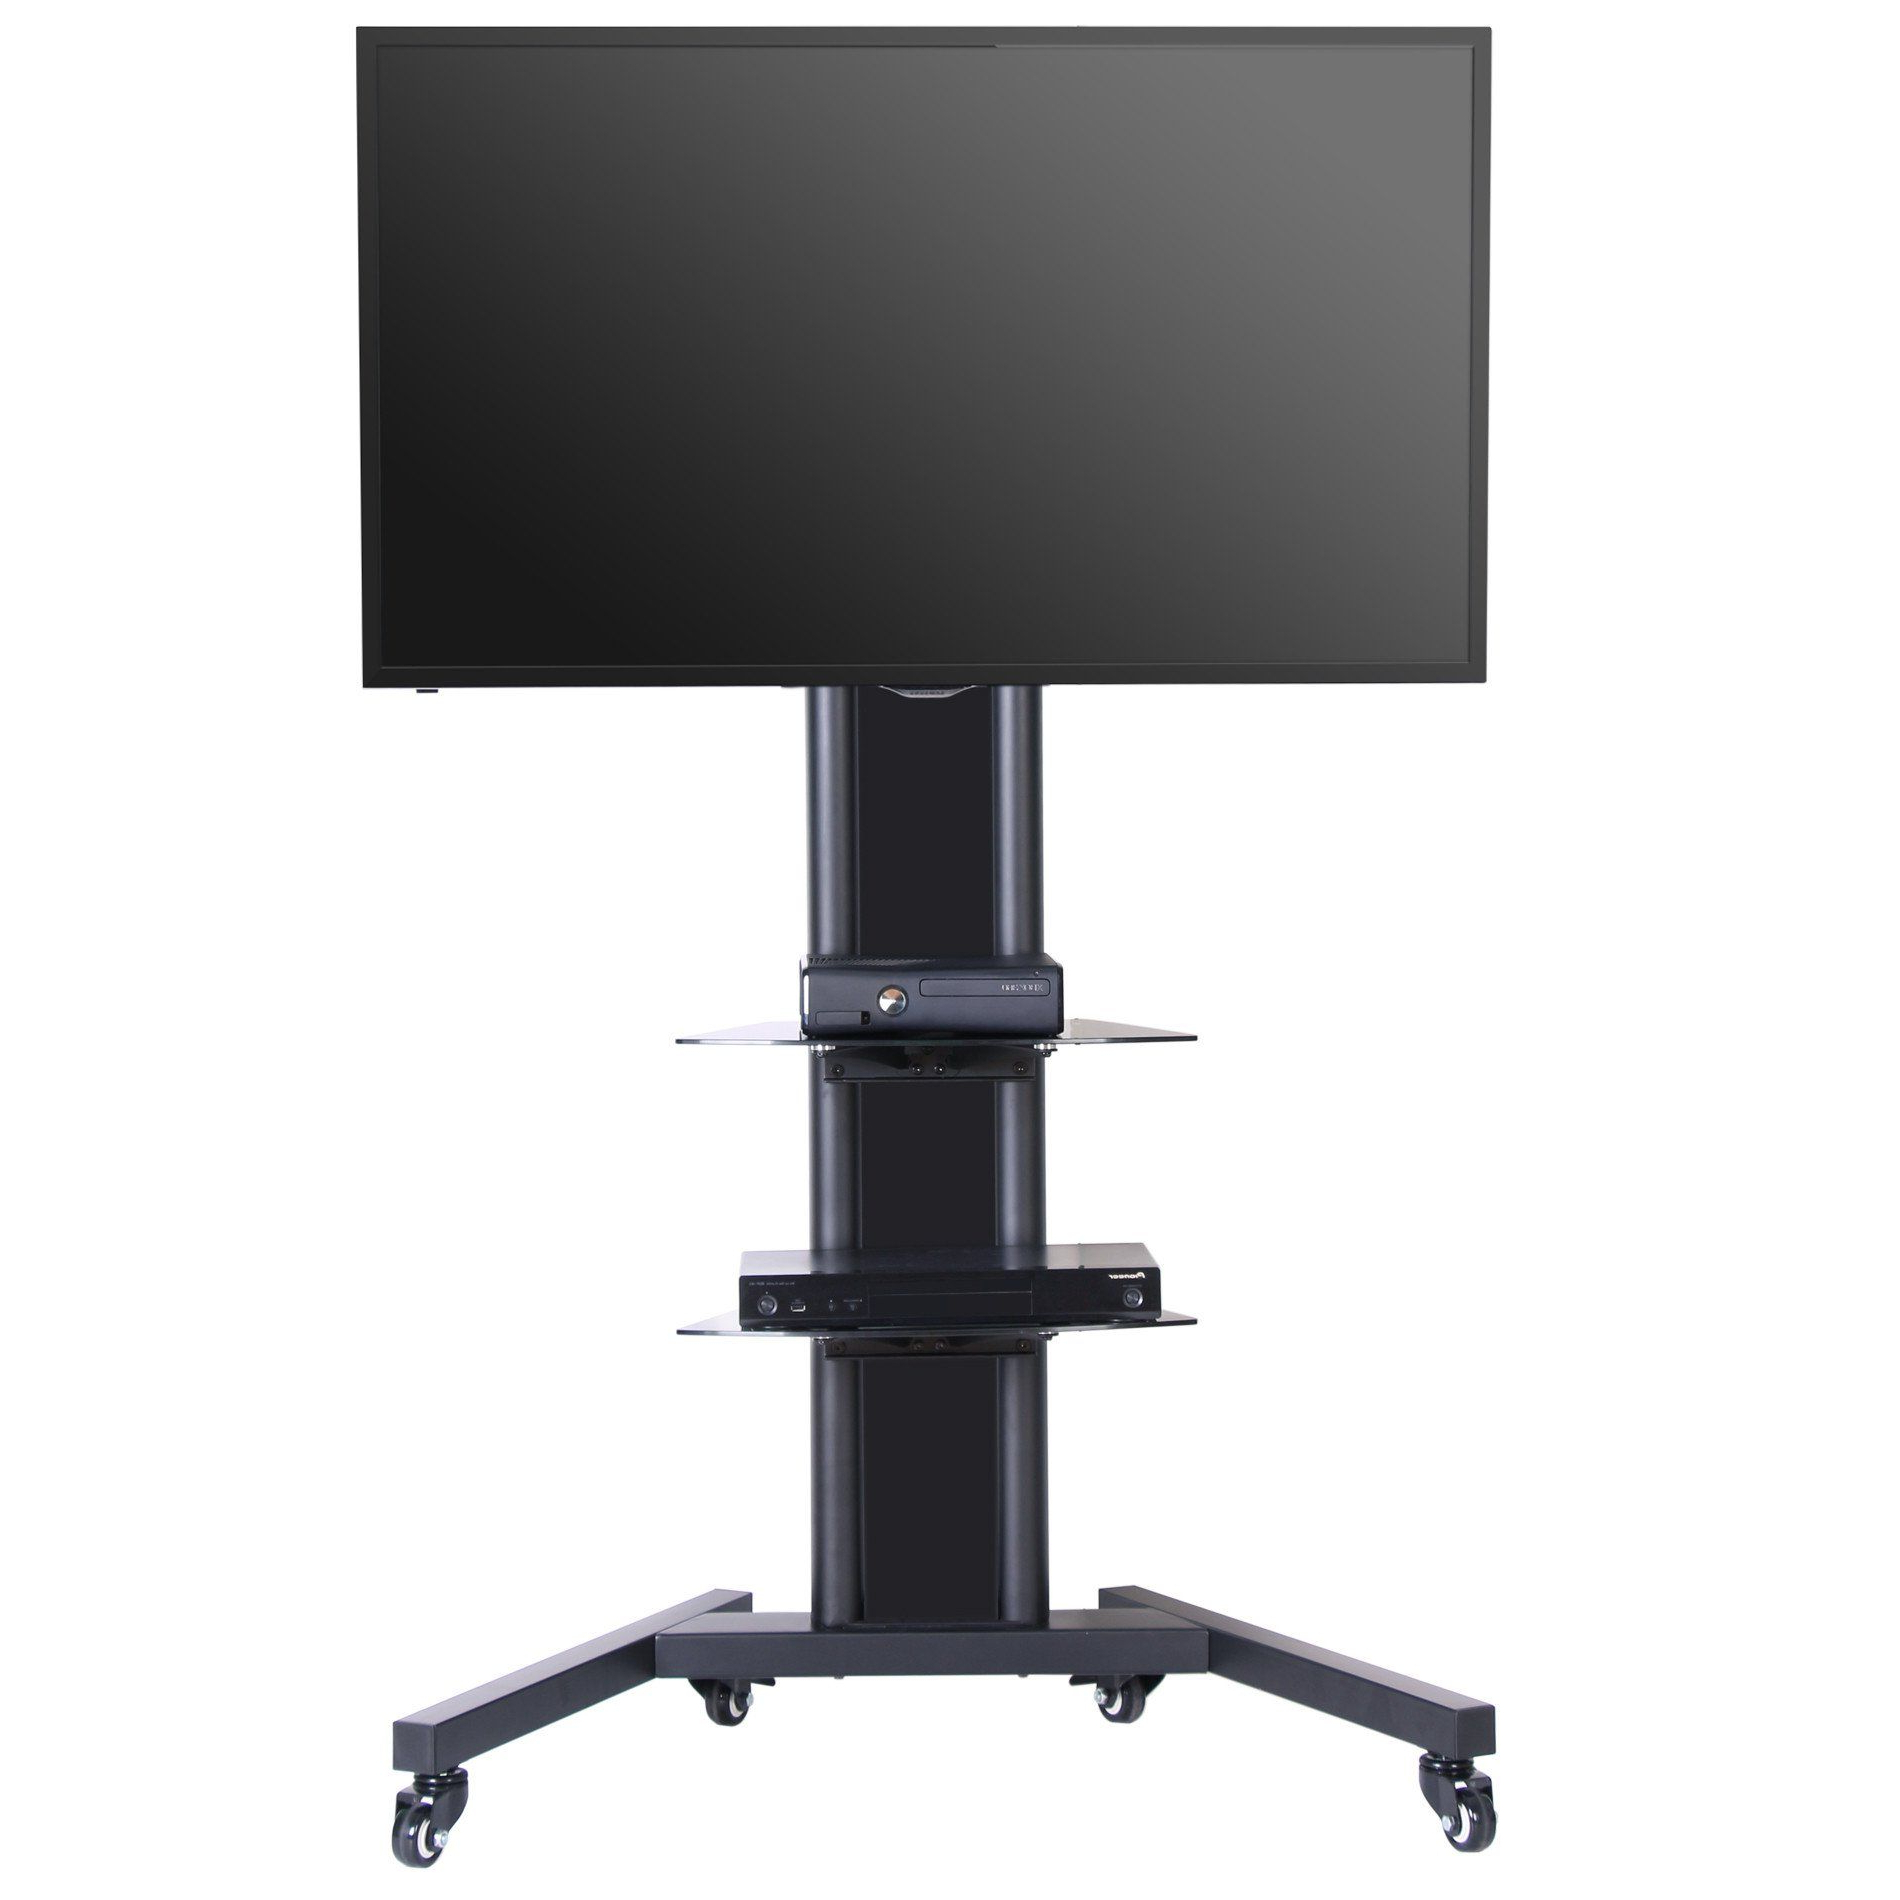 """Mobile Tv Stand With Mount For Up To 65 Inch Tv With Within Whalen Furniture Black Tv Stands For 65"""" Flat Panel Tvs With Tempered Glass Shelves (View 17 of 20)"""